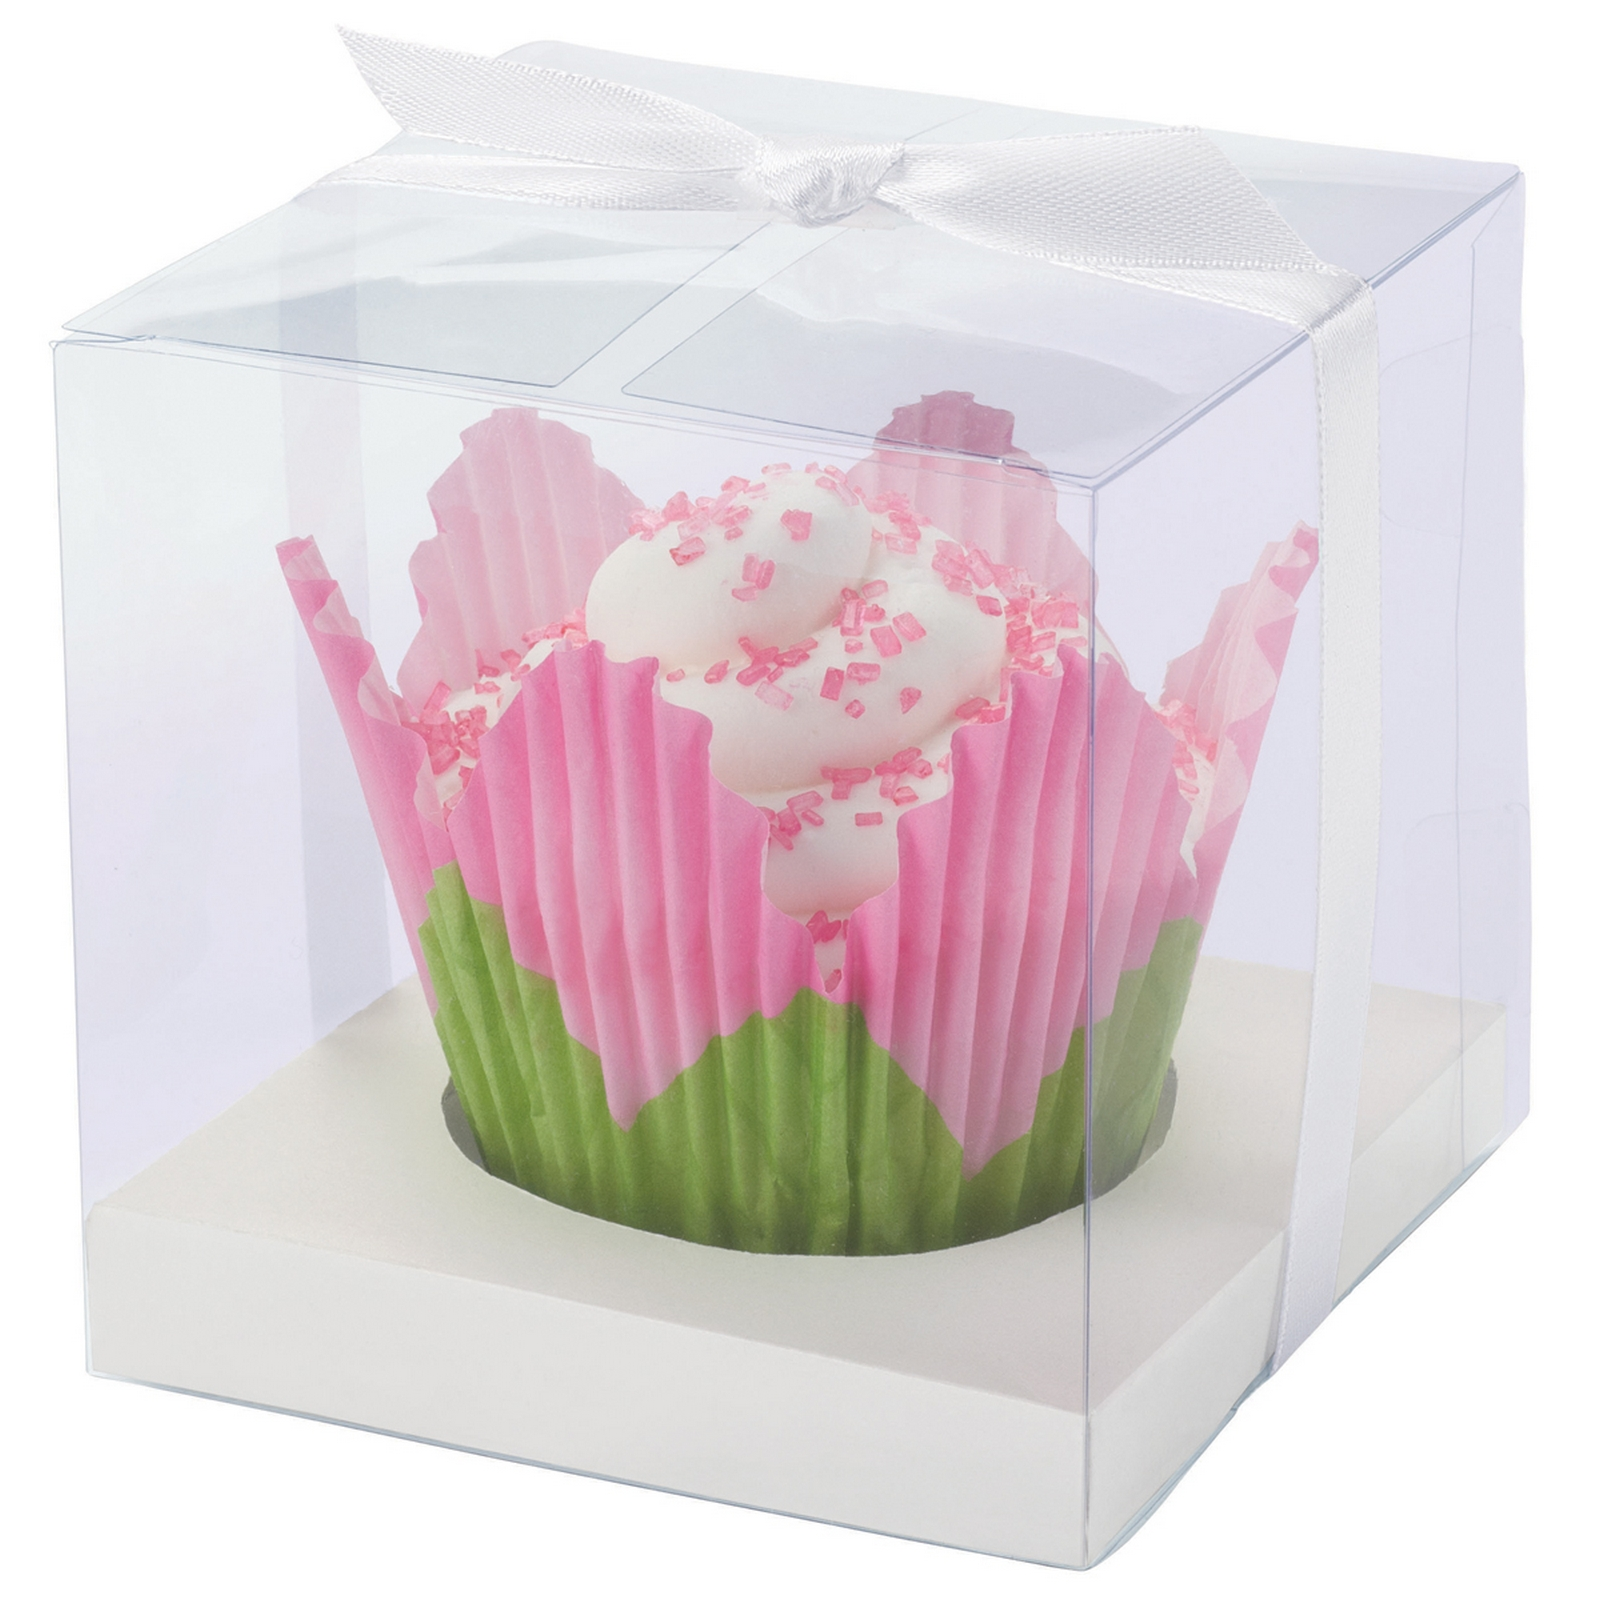 Cupcake Boxes Kmart Wilton Cupcake Box 20 Pkg Clear And White